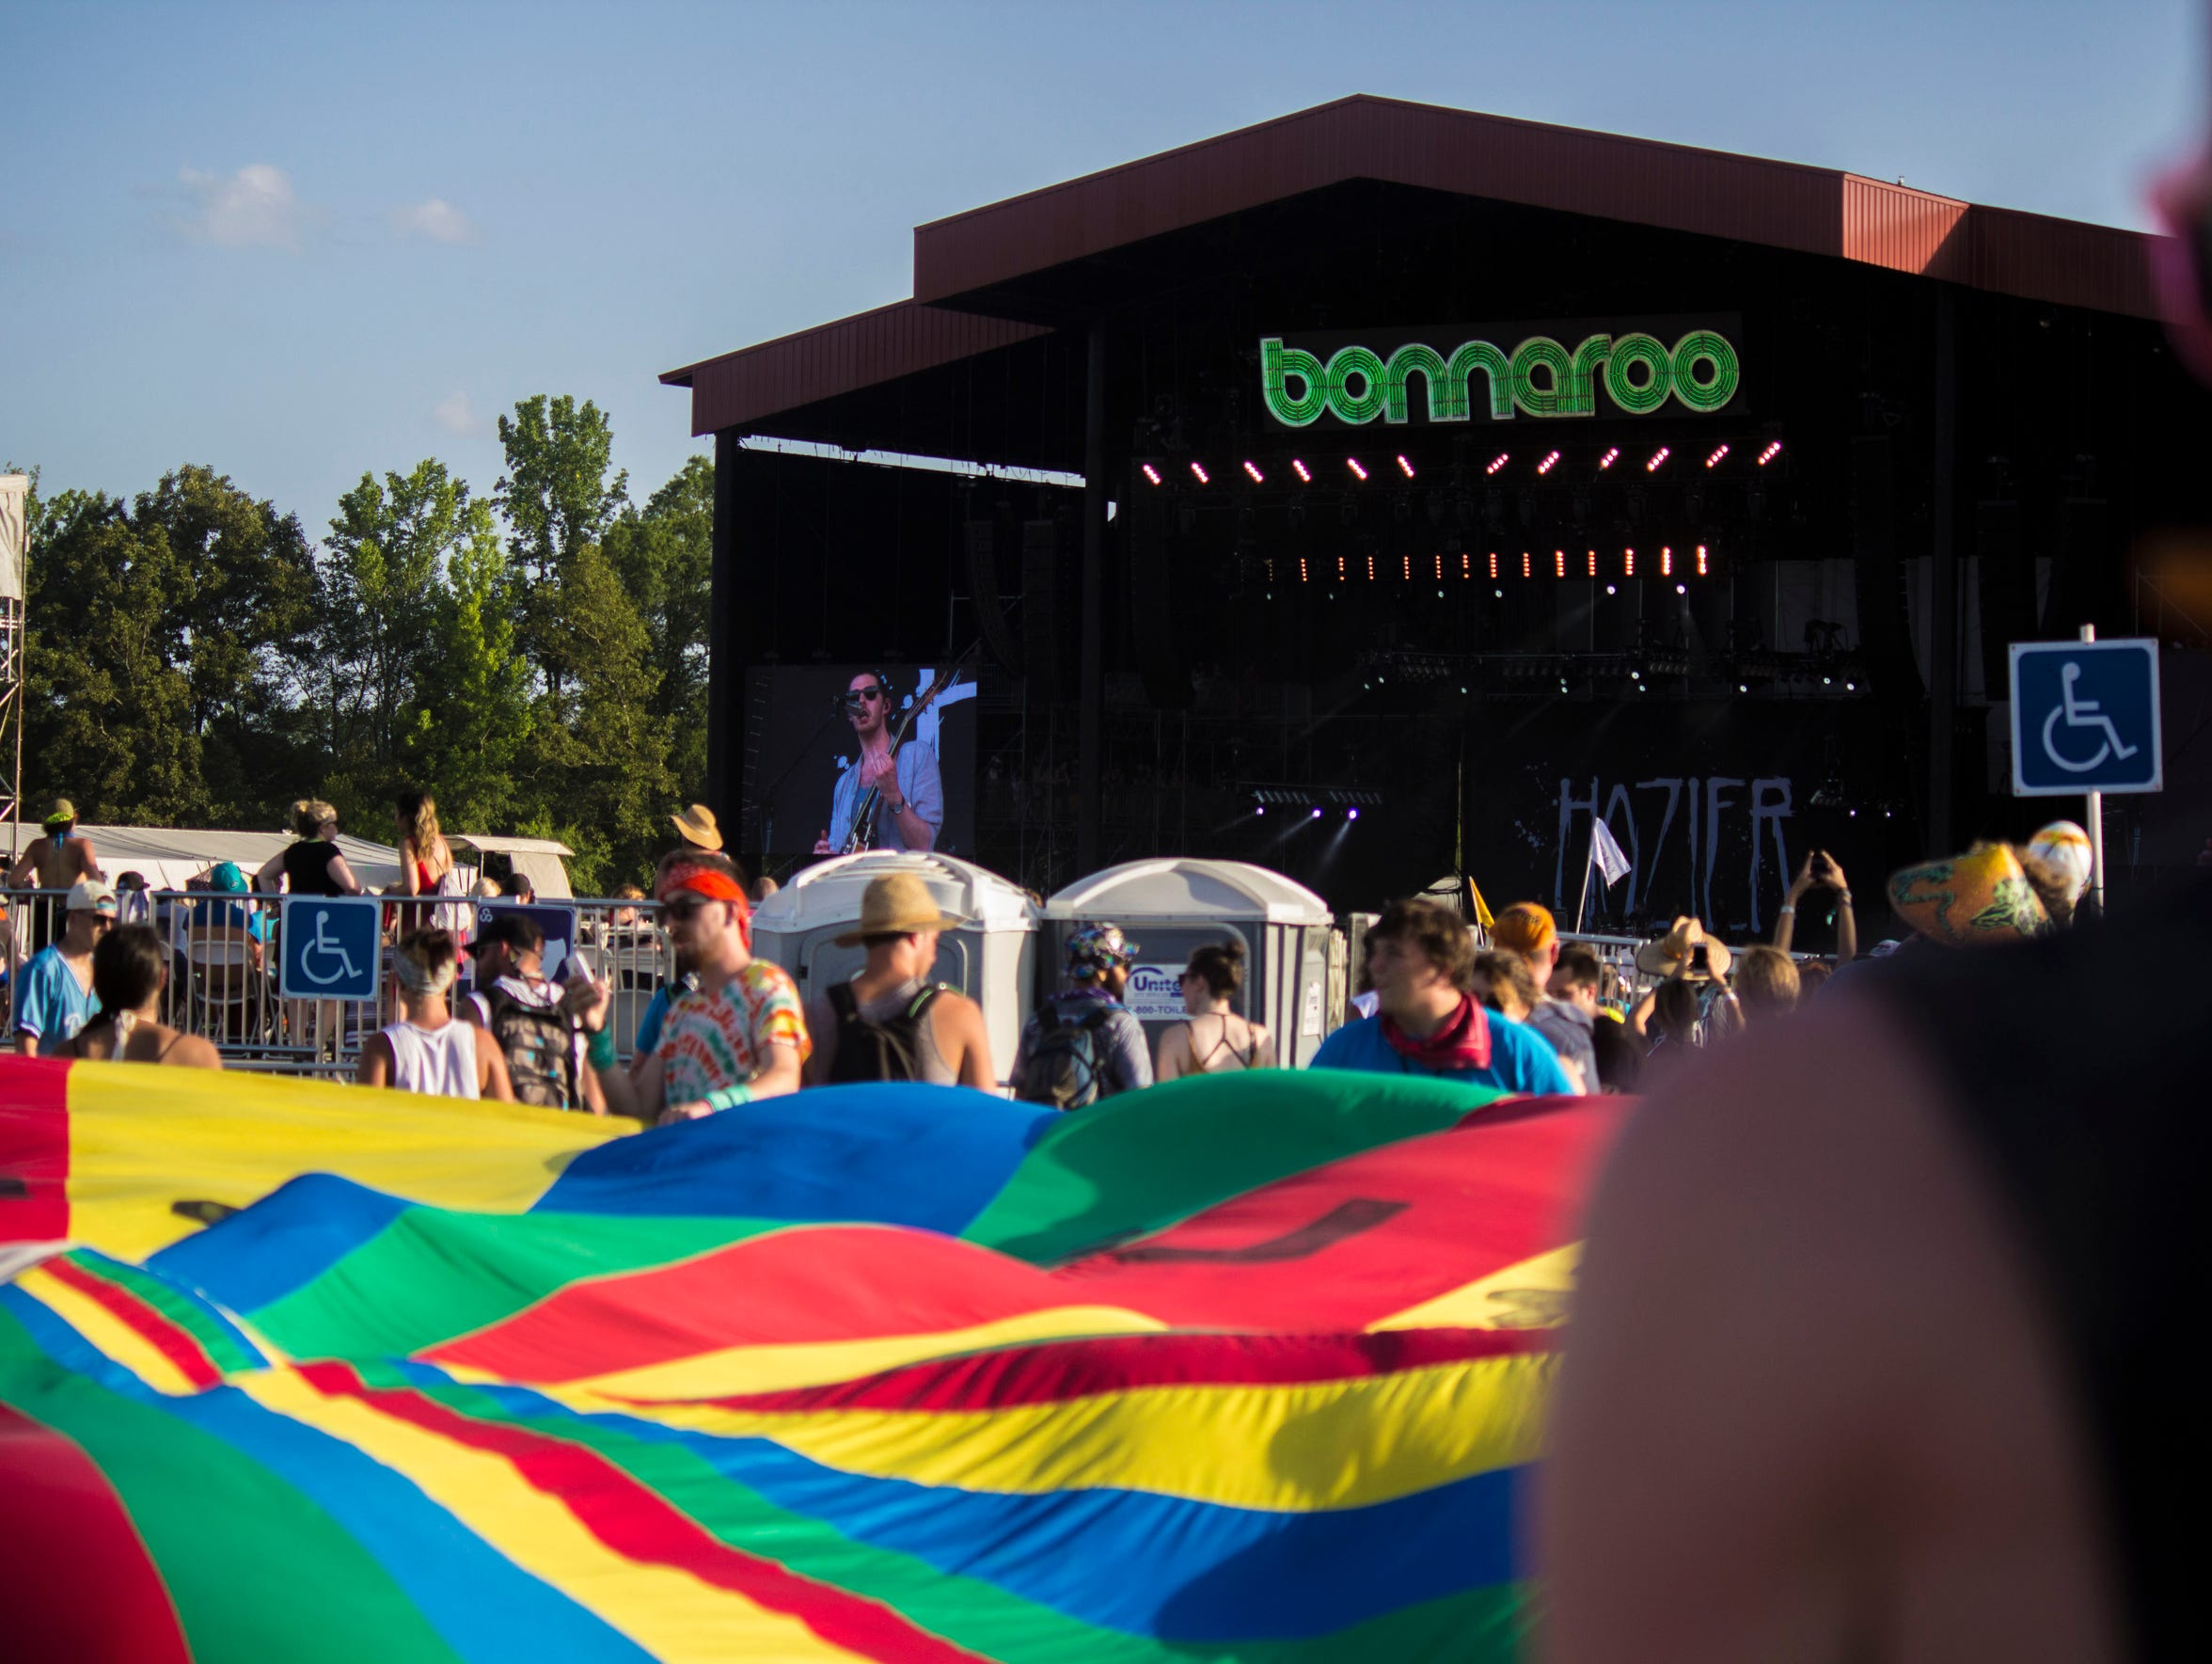 Manchester, Tenn. plays host to the Bonnaroo Arts and